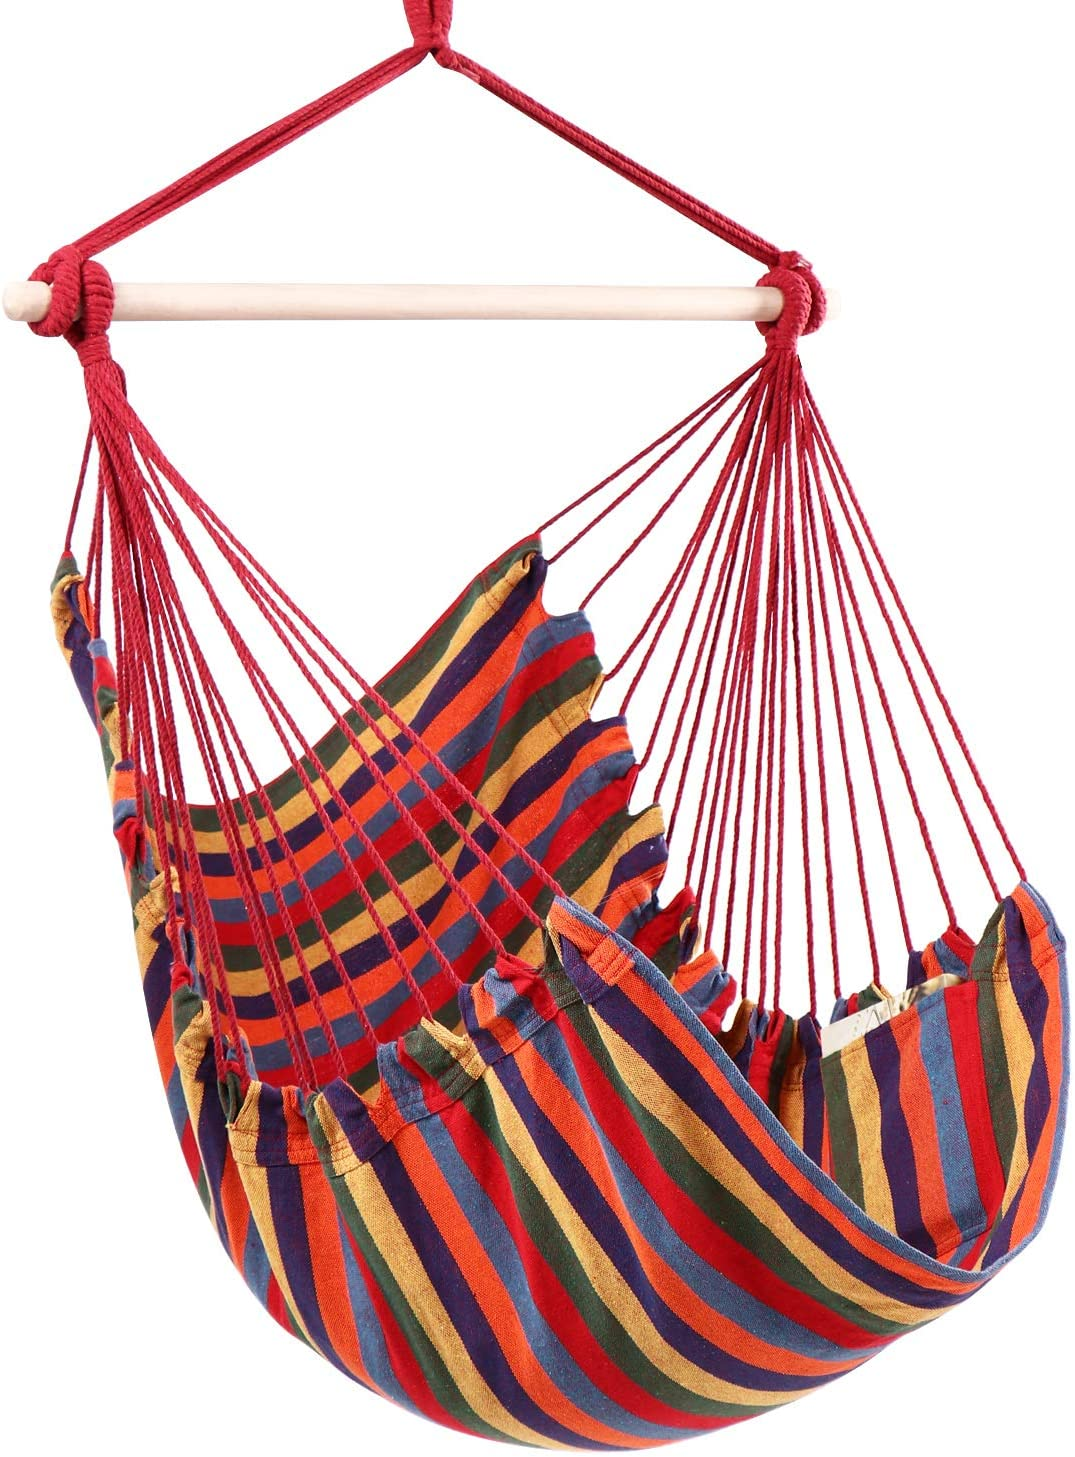 Y- STOP Hammock Chair Hanging Rope Swing - Max 330 Lbs - Quality Cotton Weave for Superior Comfort & Durability (Red Stripe)